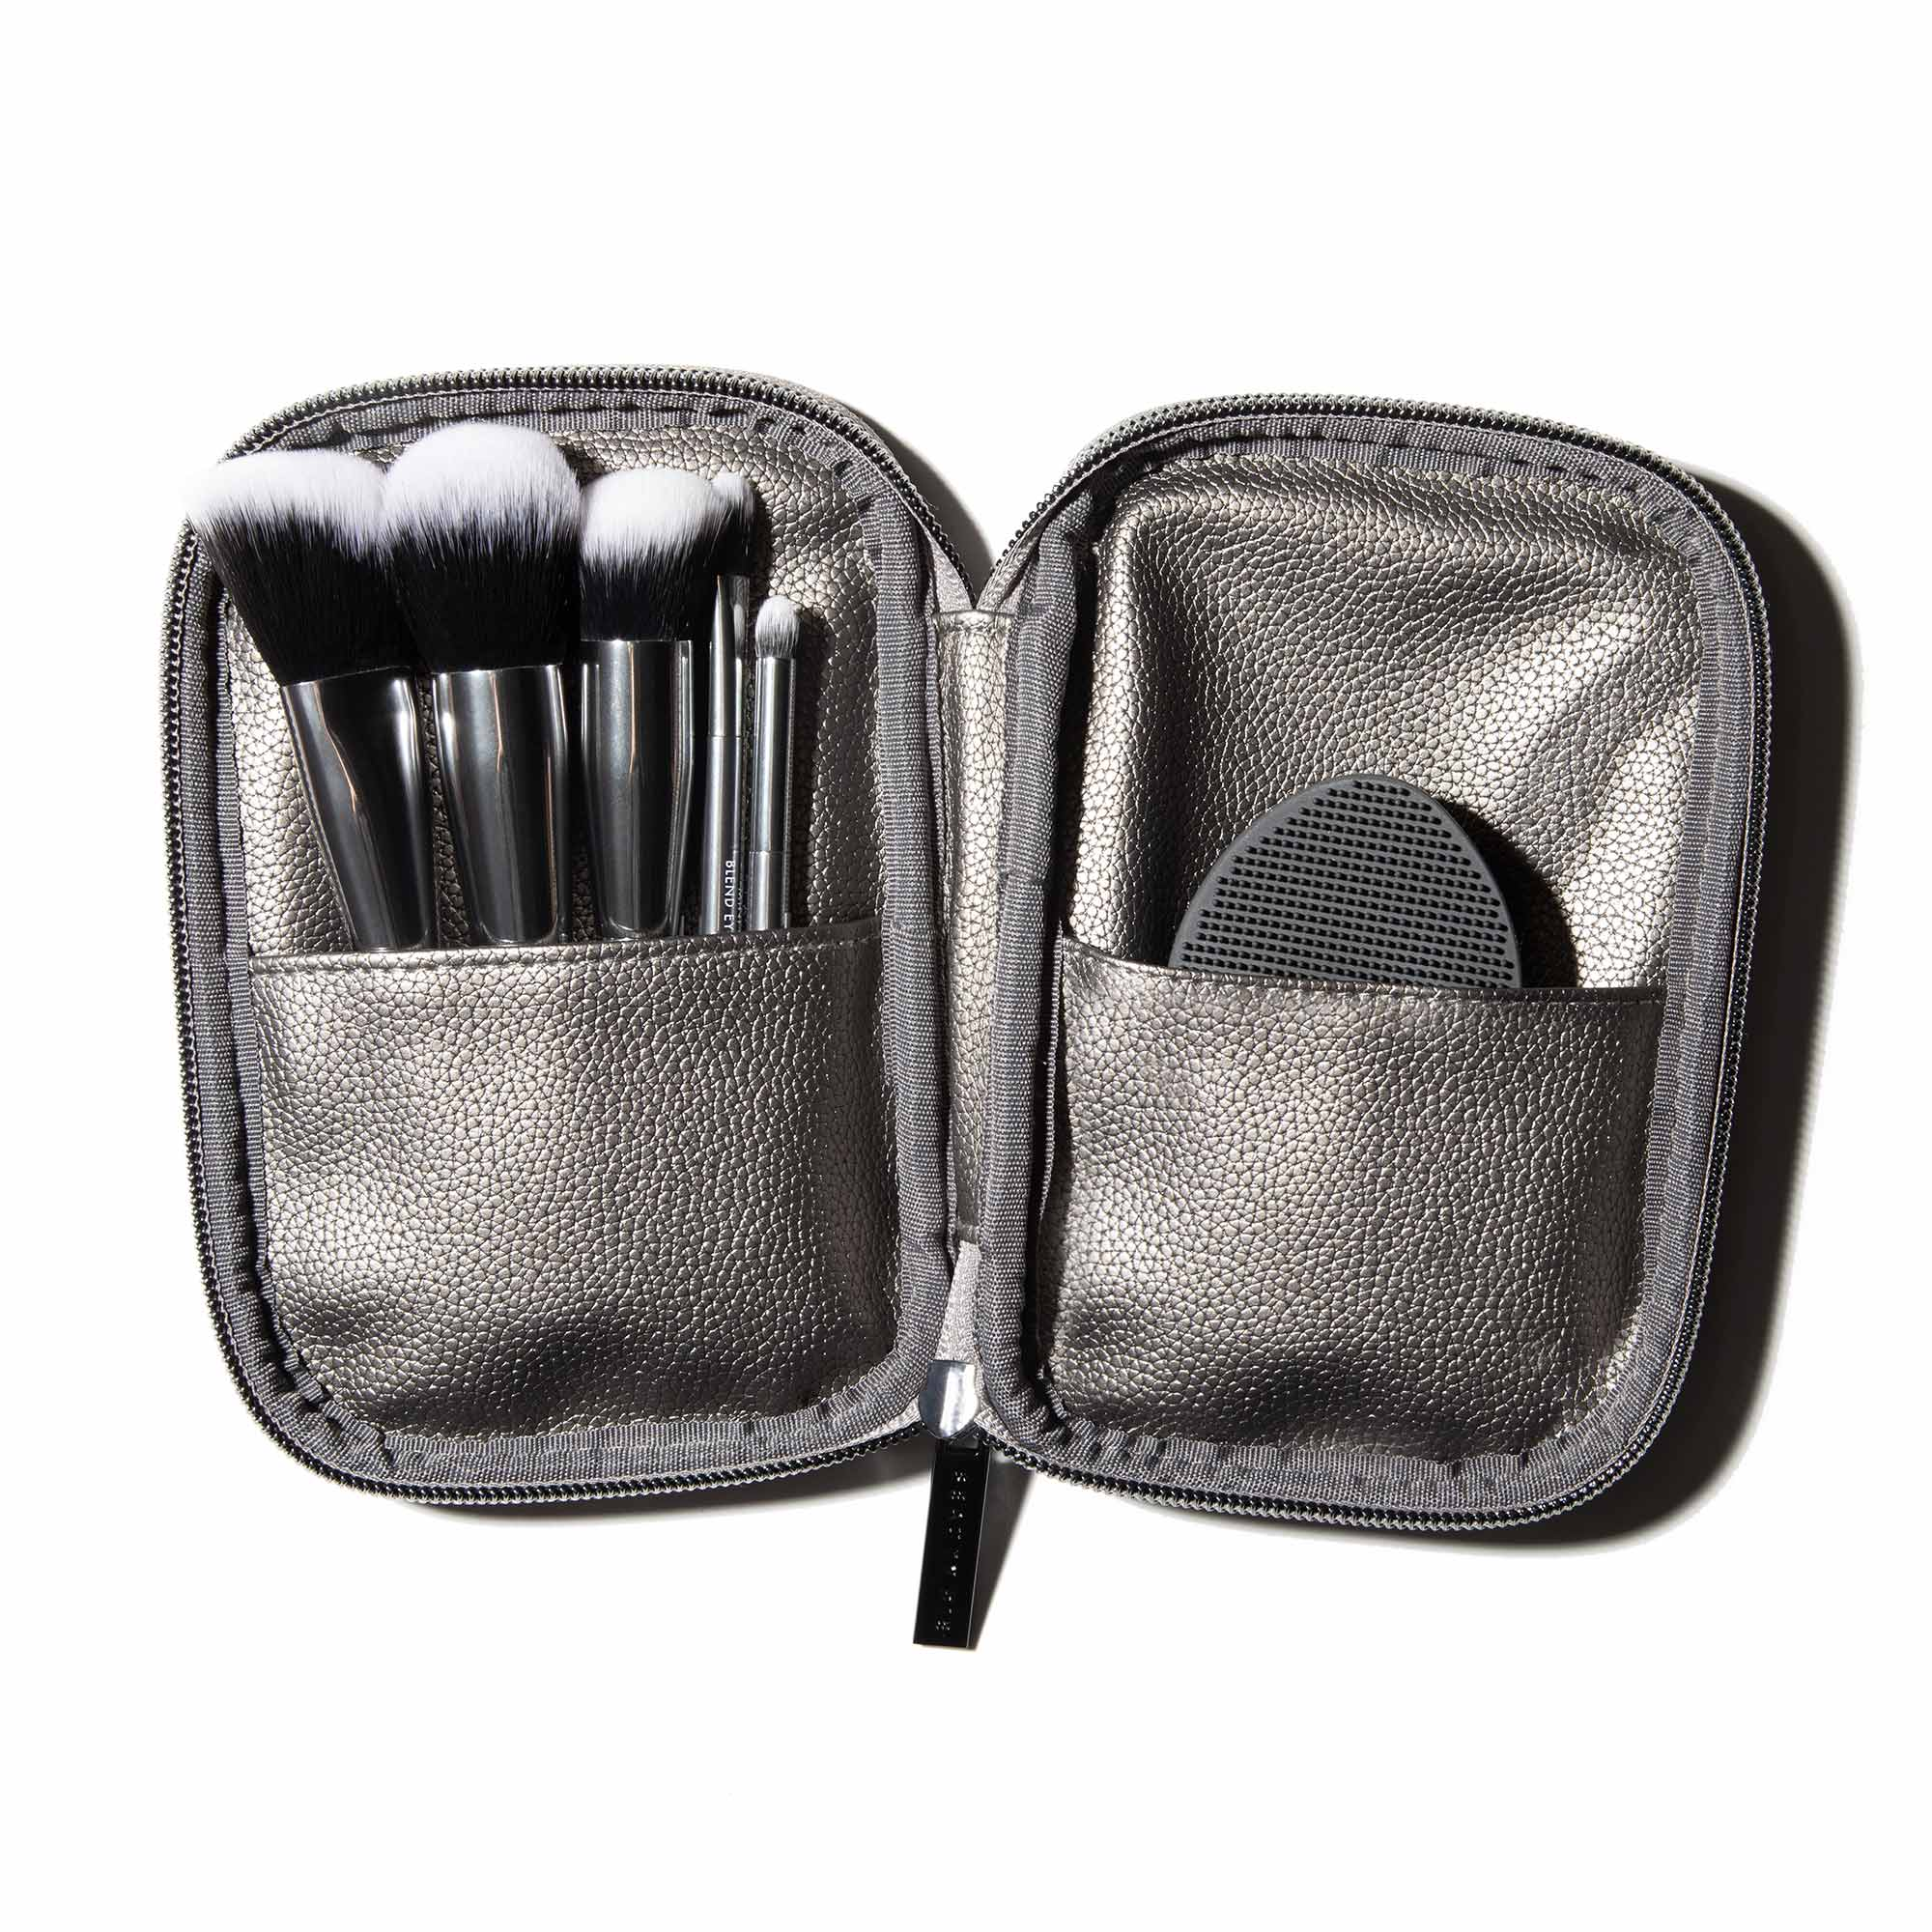 Pro Travel Brush Set by Beauty Pie